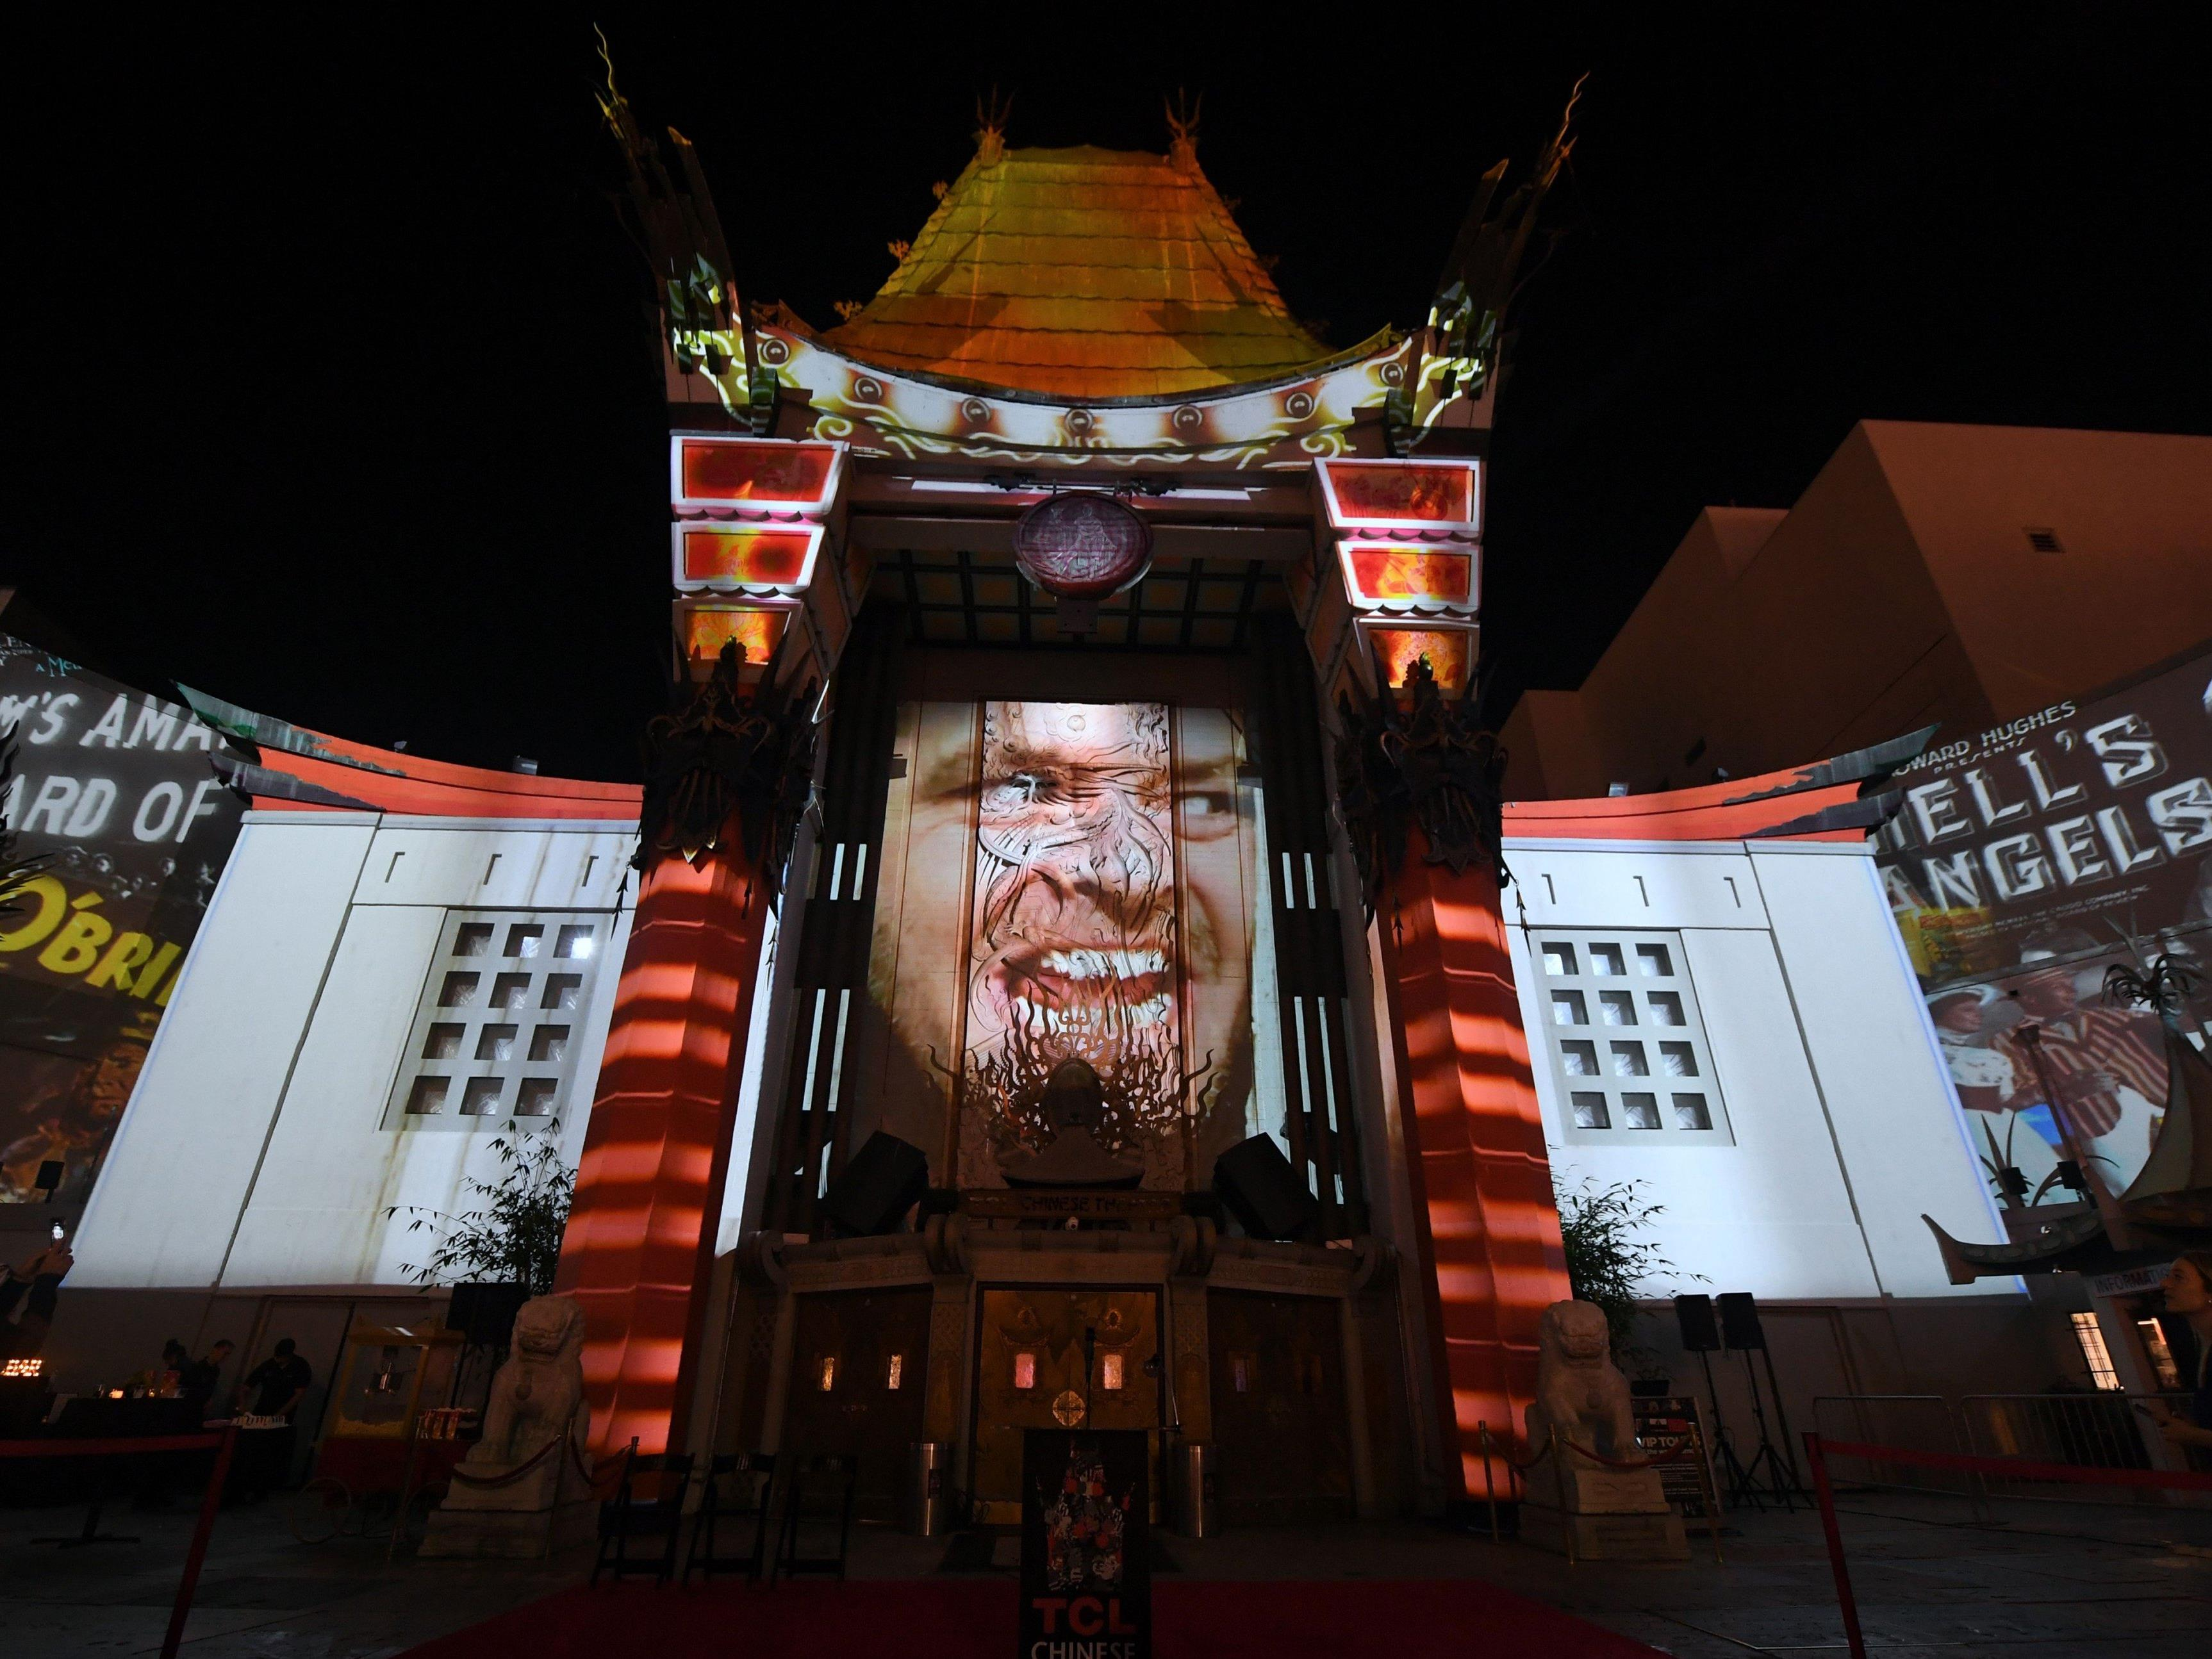 Das Chinese Theatre in Los Angeles.